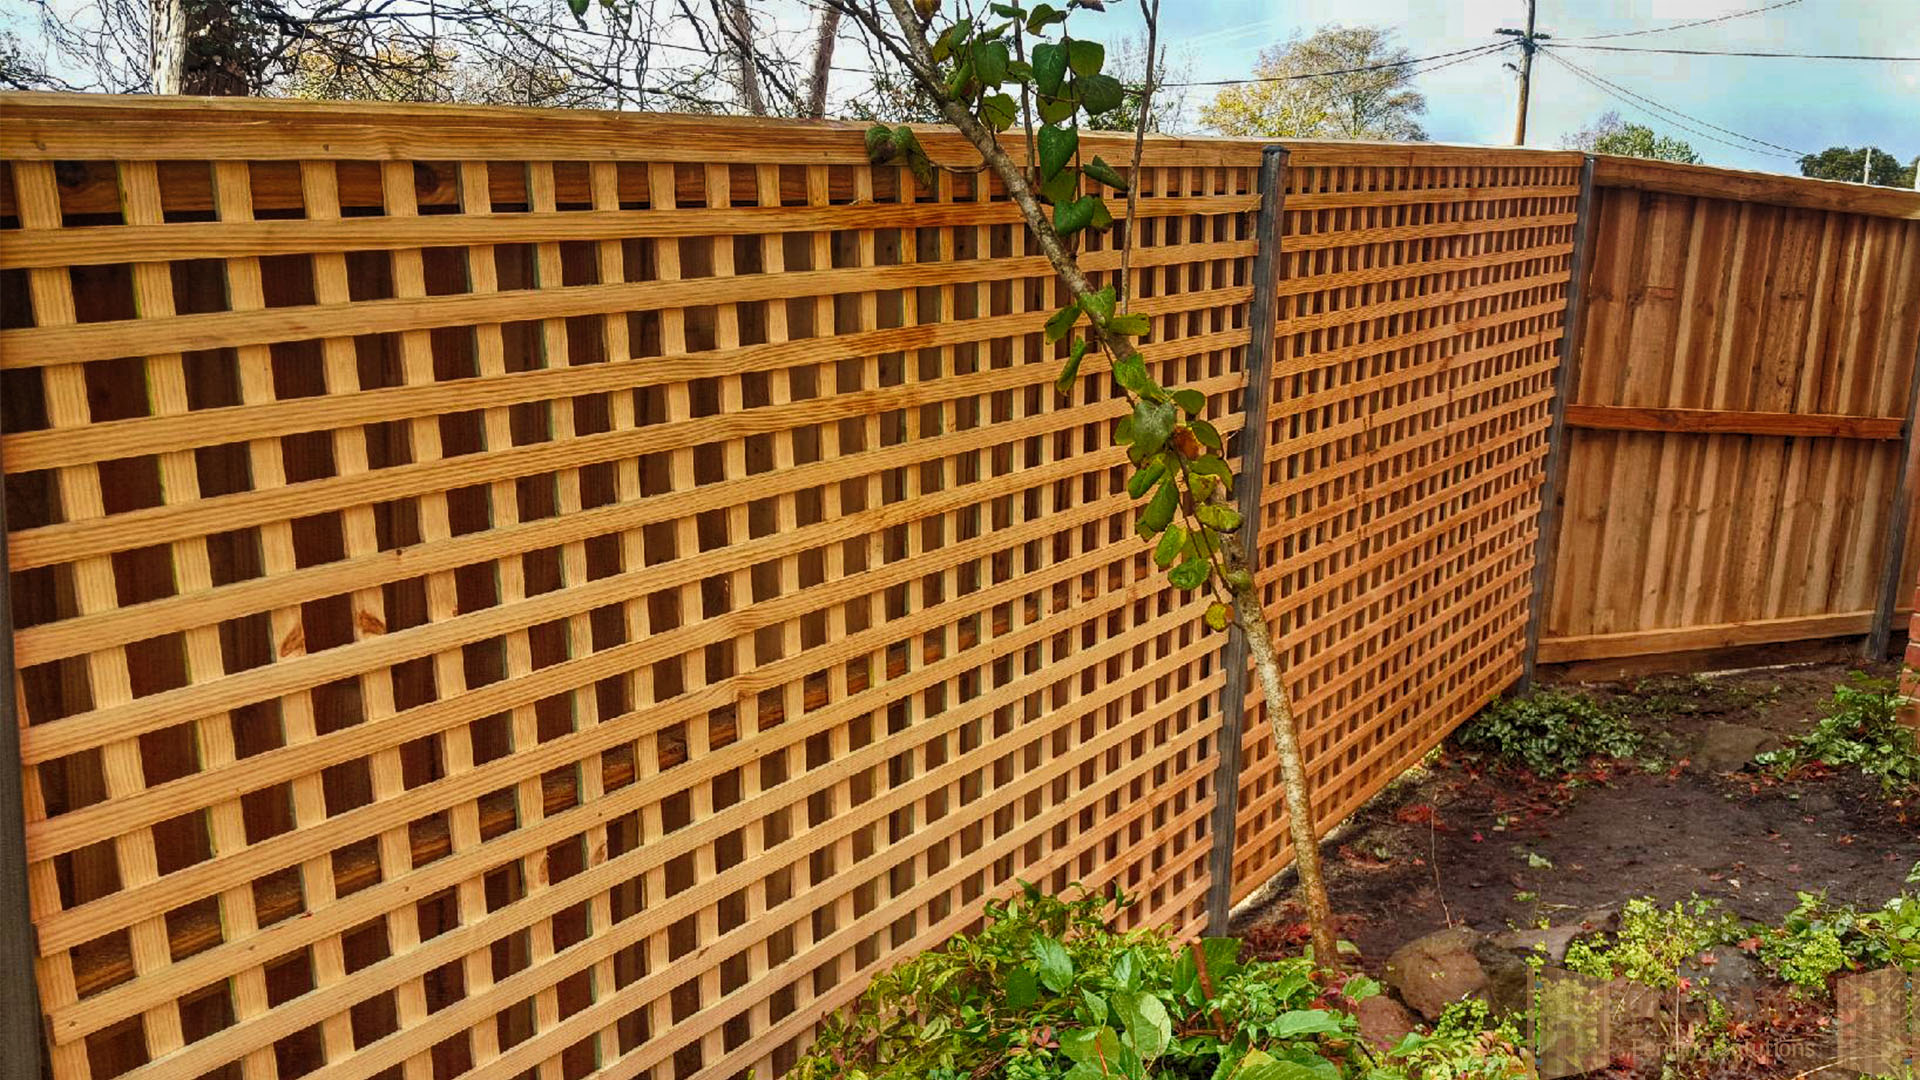 Lattice work on Timber Fencing